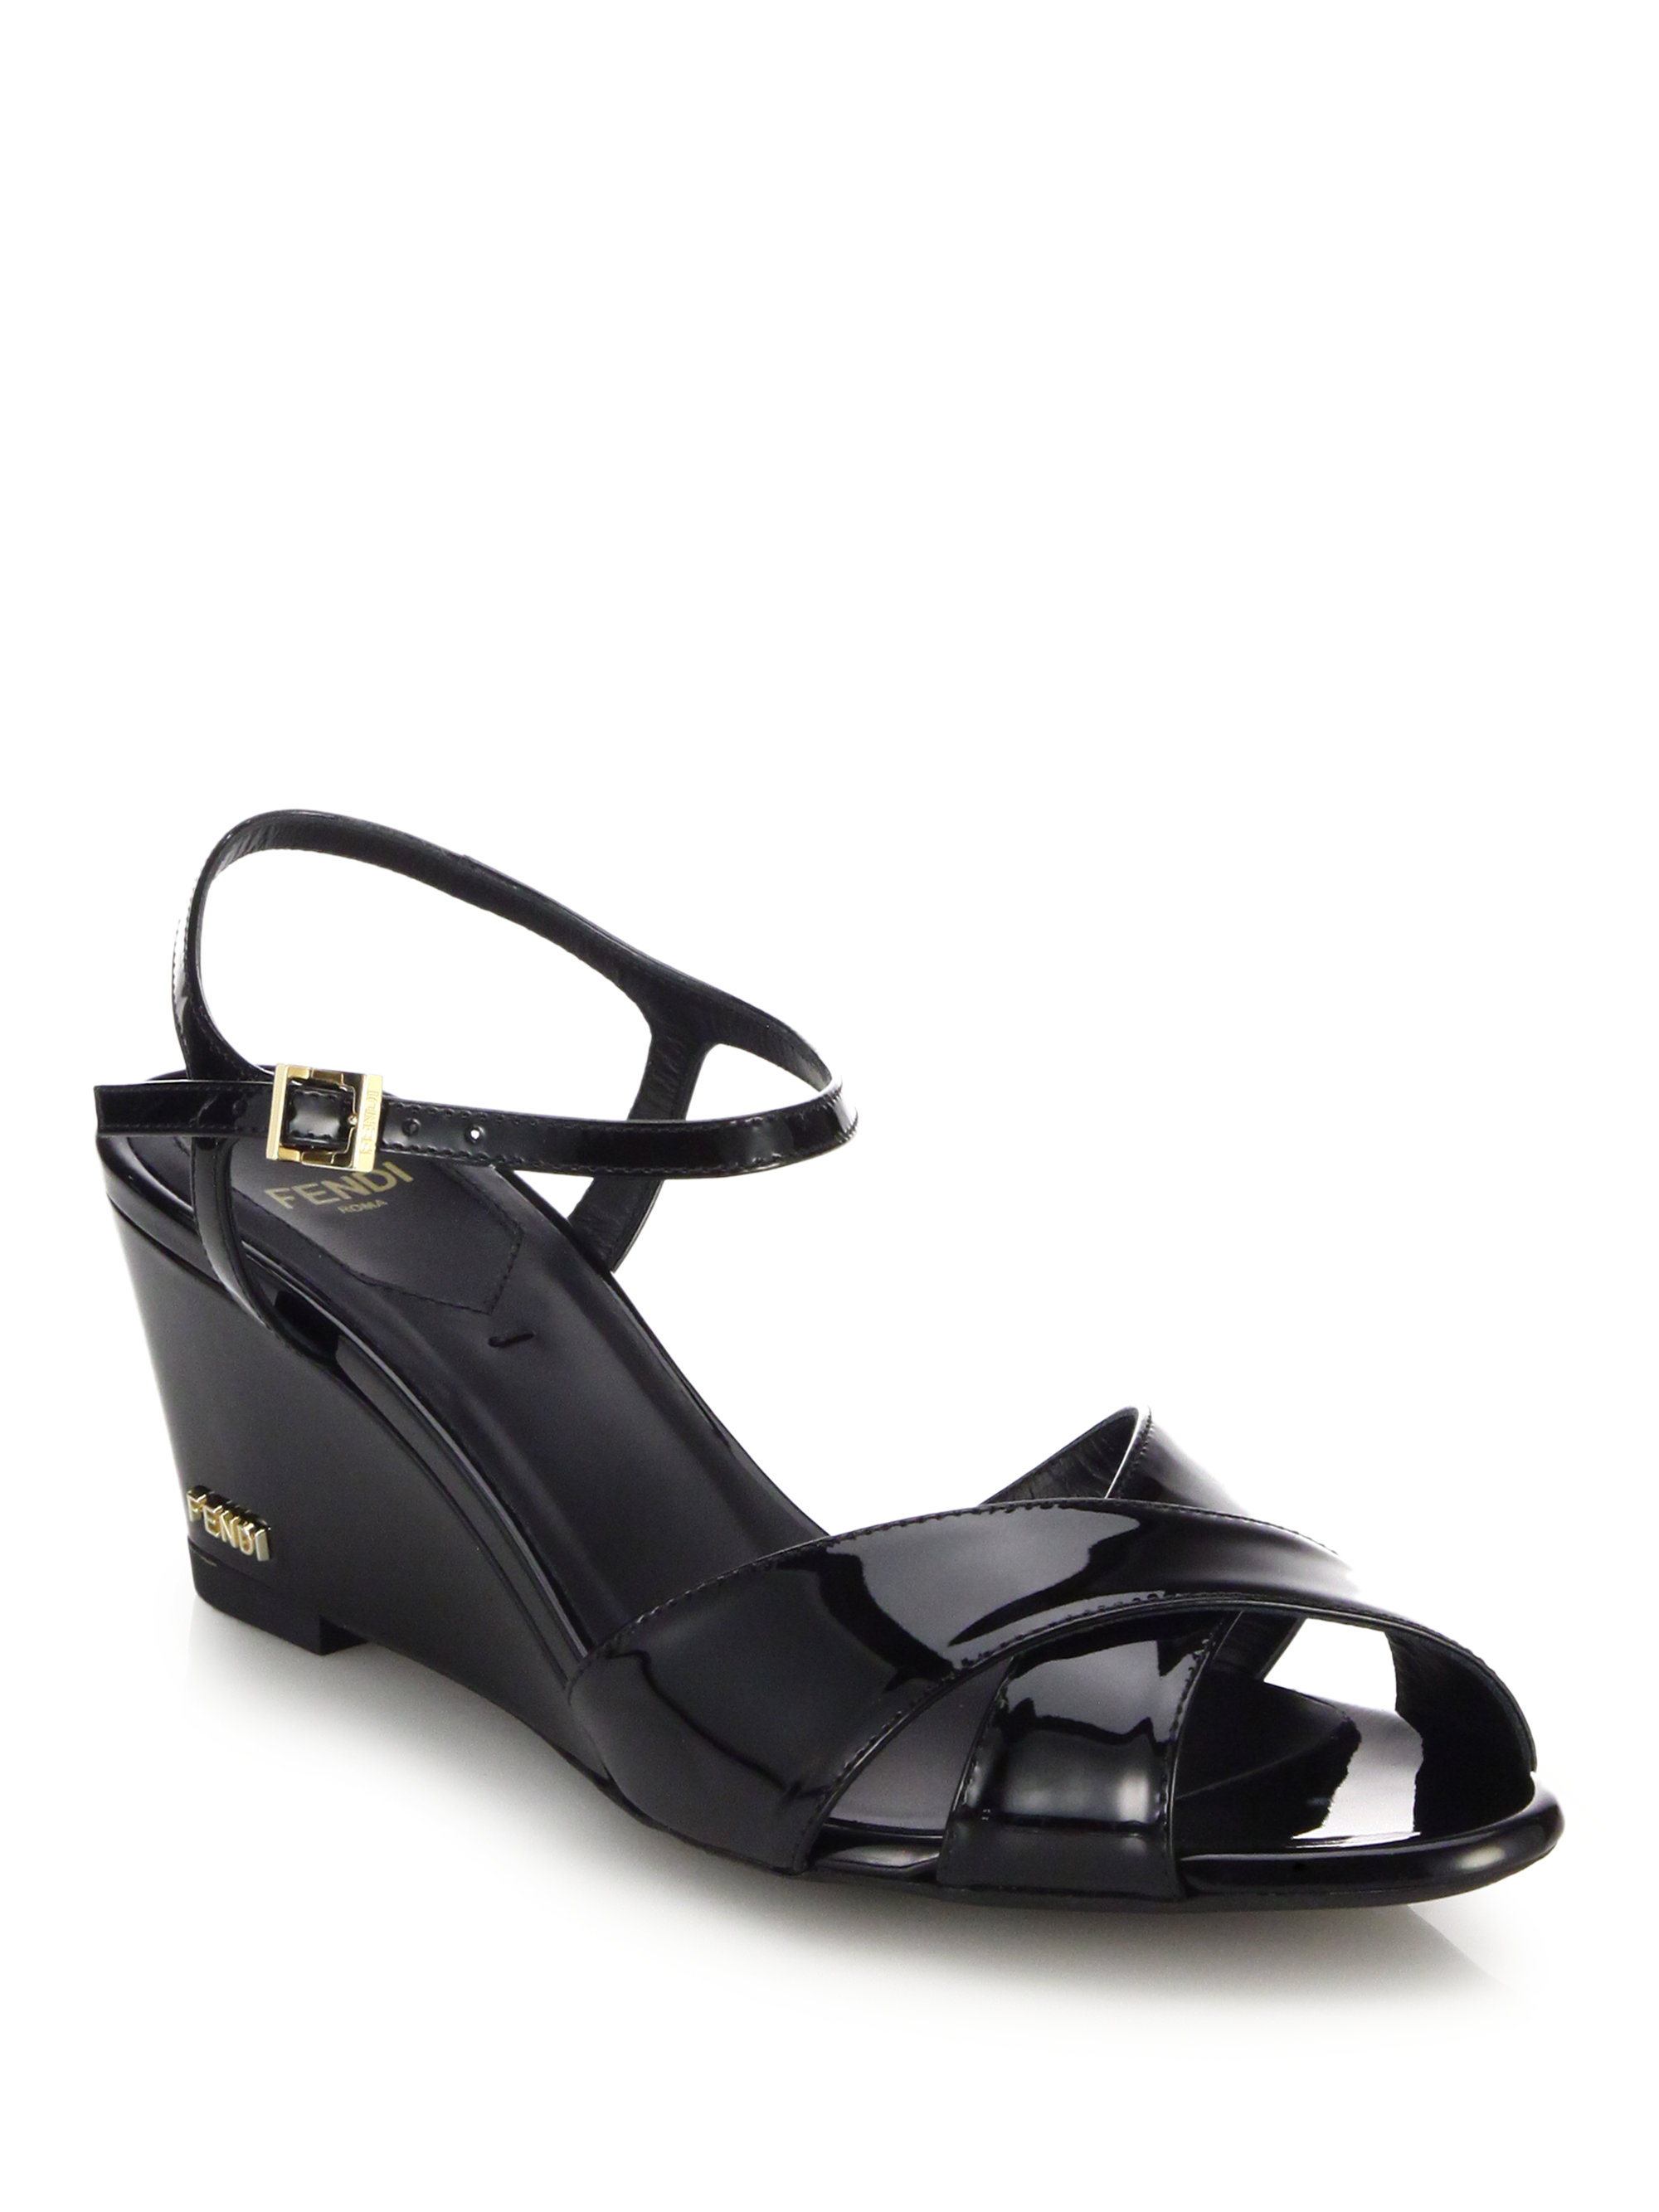 Fendi Patent Leather Wedge Sandals In Black Lyst